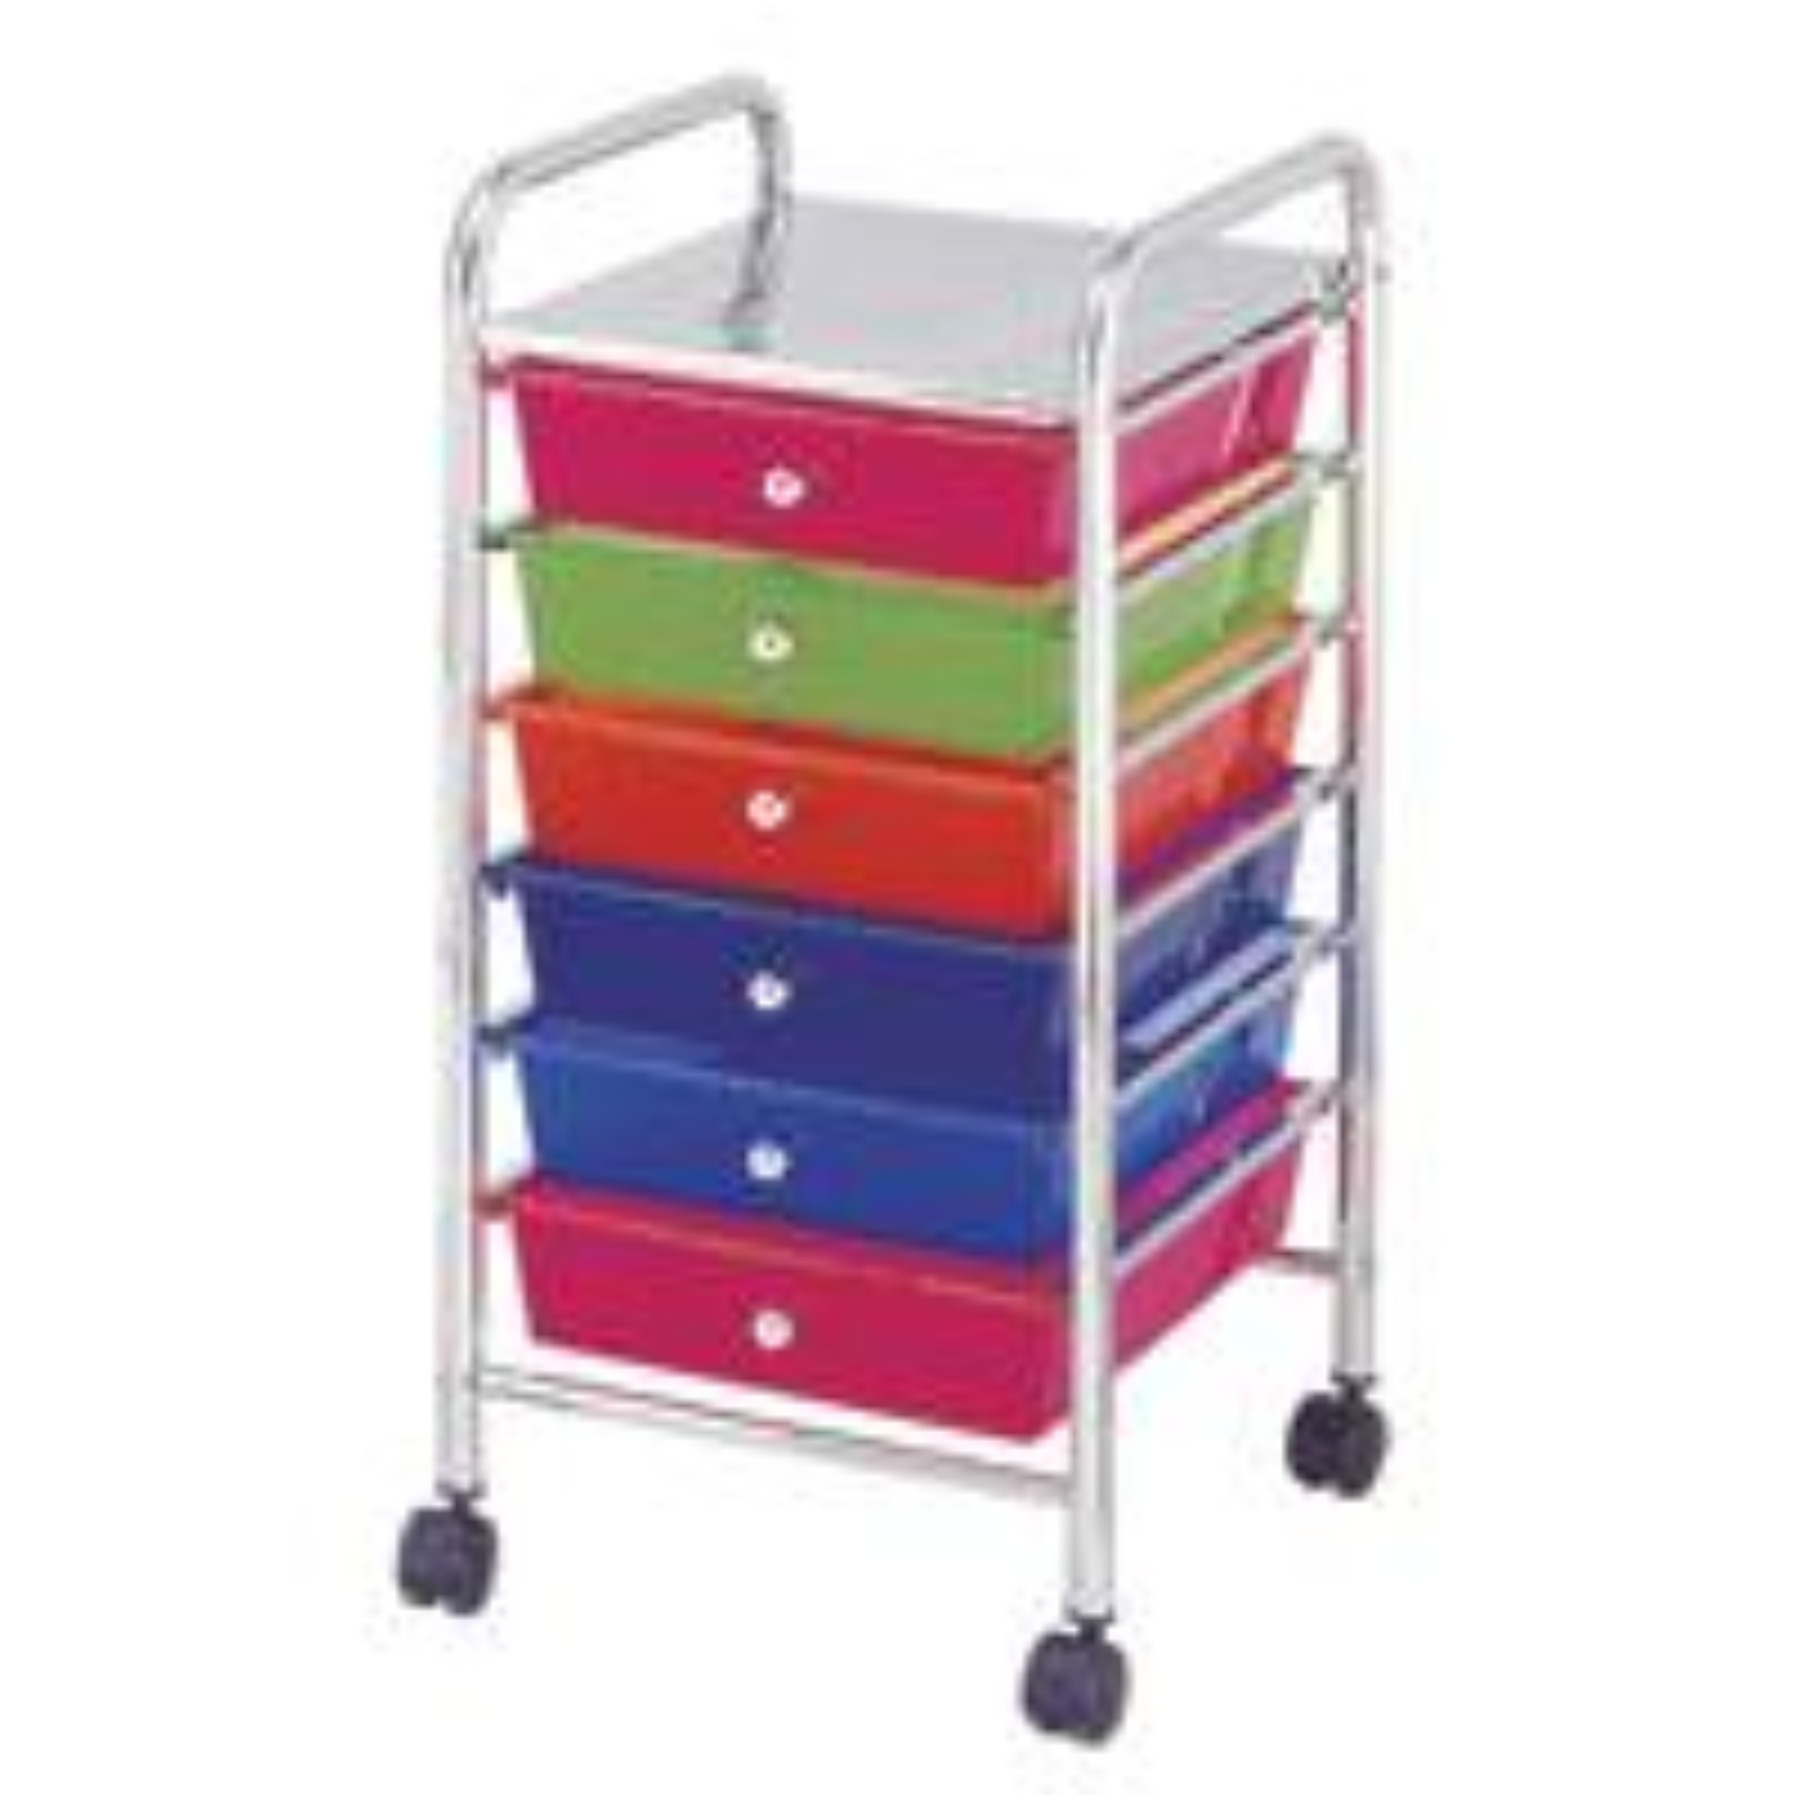 Homebasix G006-CH Storage Cart, Plastic, Mirror Polished Chrome Frame